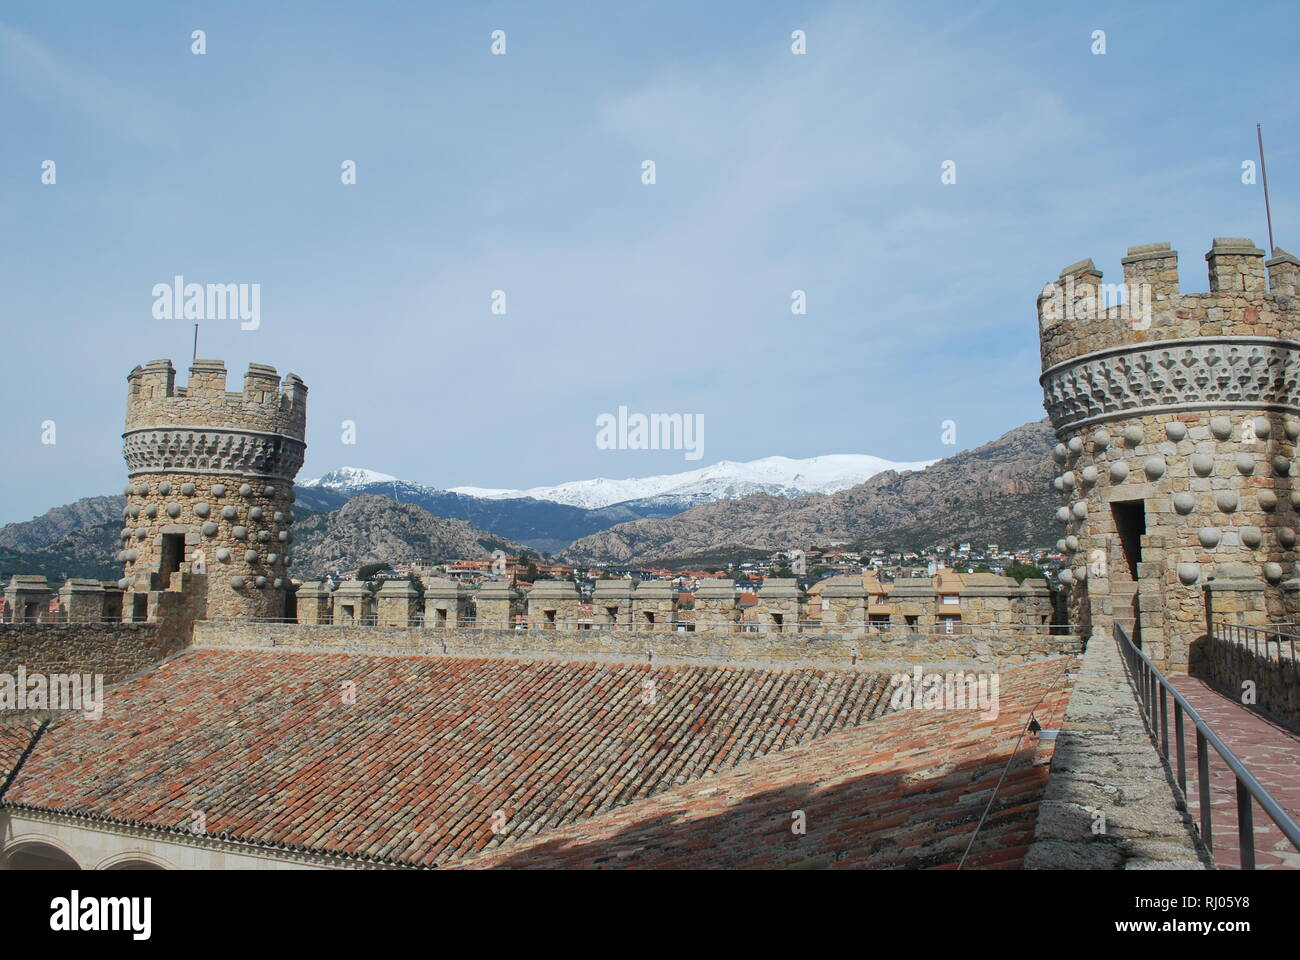 A view of mountains and turrets on the rooftop terrace of the castle of Manzanares el Real in central Spain Stock Photo